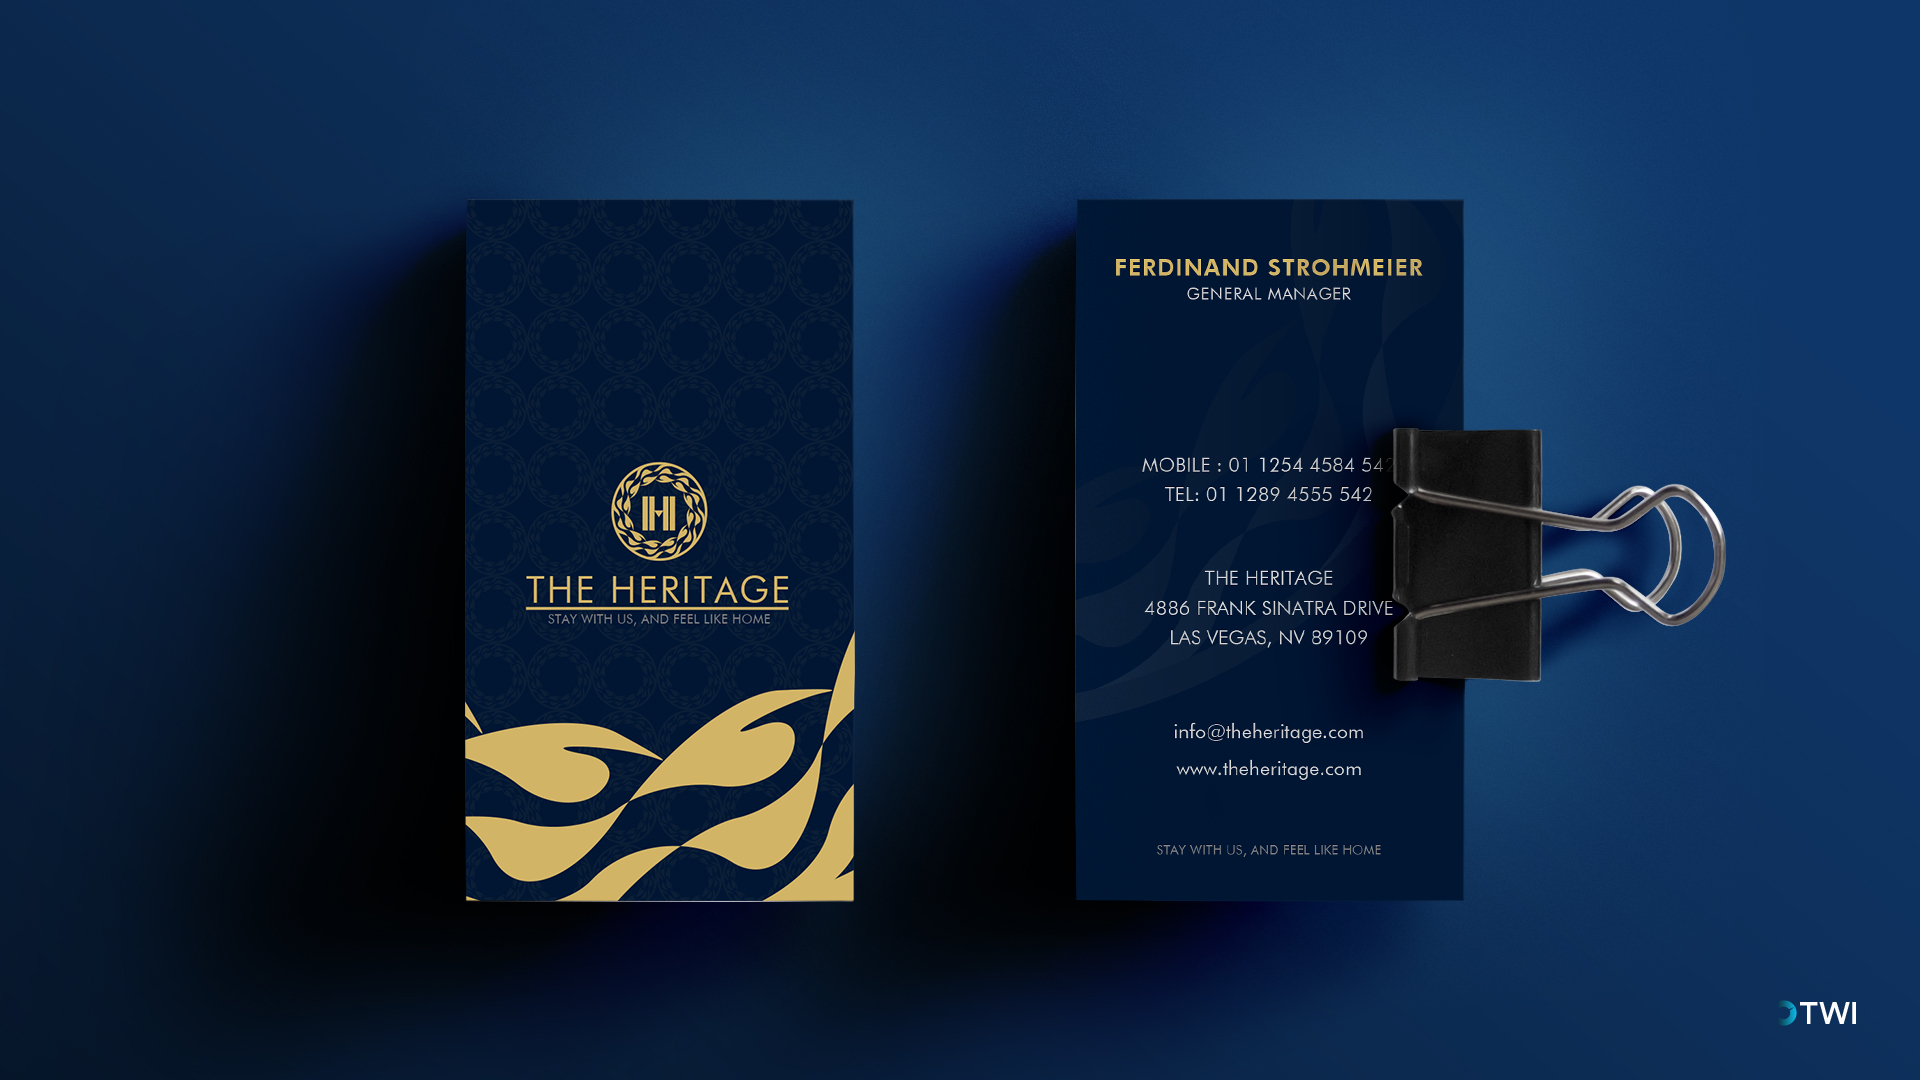 Our works thinkworld interactive heritage business card colourmoves